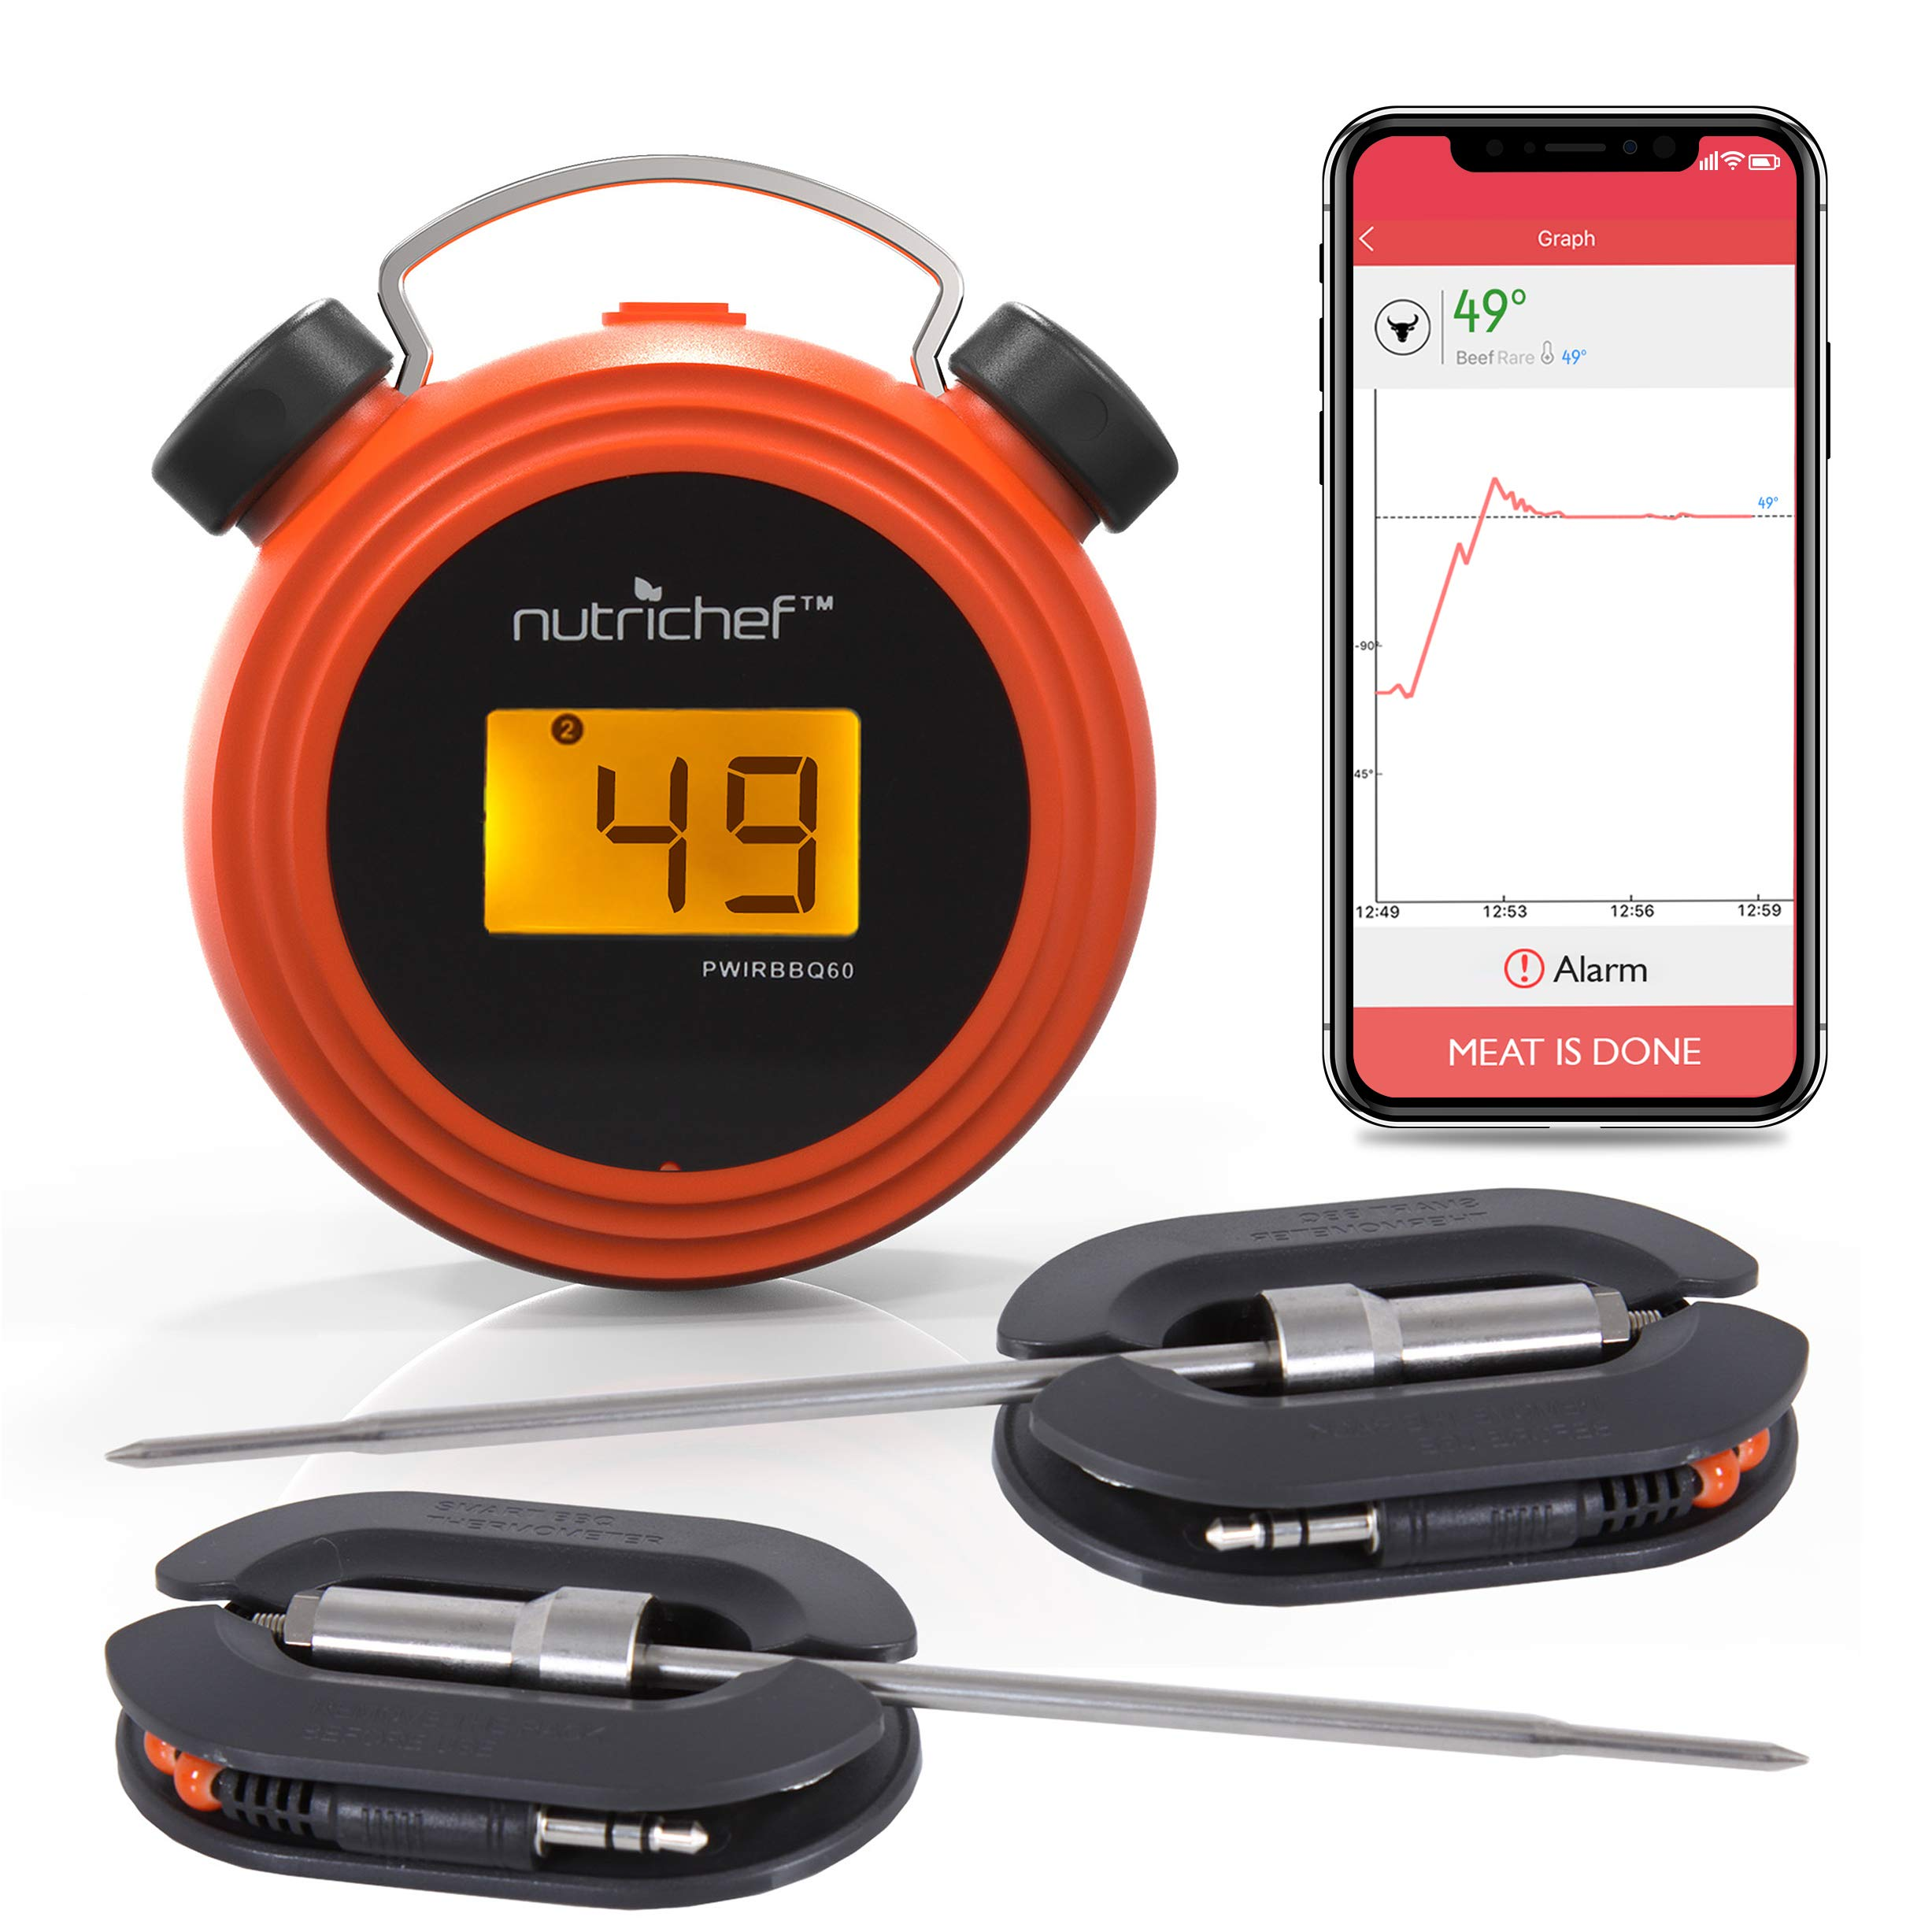 Smart Bluetooth BBQ Grill Thermometer - Digital Display, Stainless Dual Probes Safe to Leave in Outdoor Barbecue Meat Smoker - Wireless Remote Alert iOS Android Phone WiFi App - NutriChef PWIRBBQ60 by Nutrichef